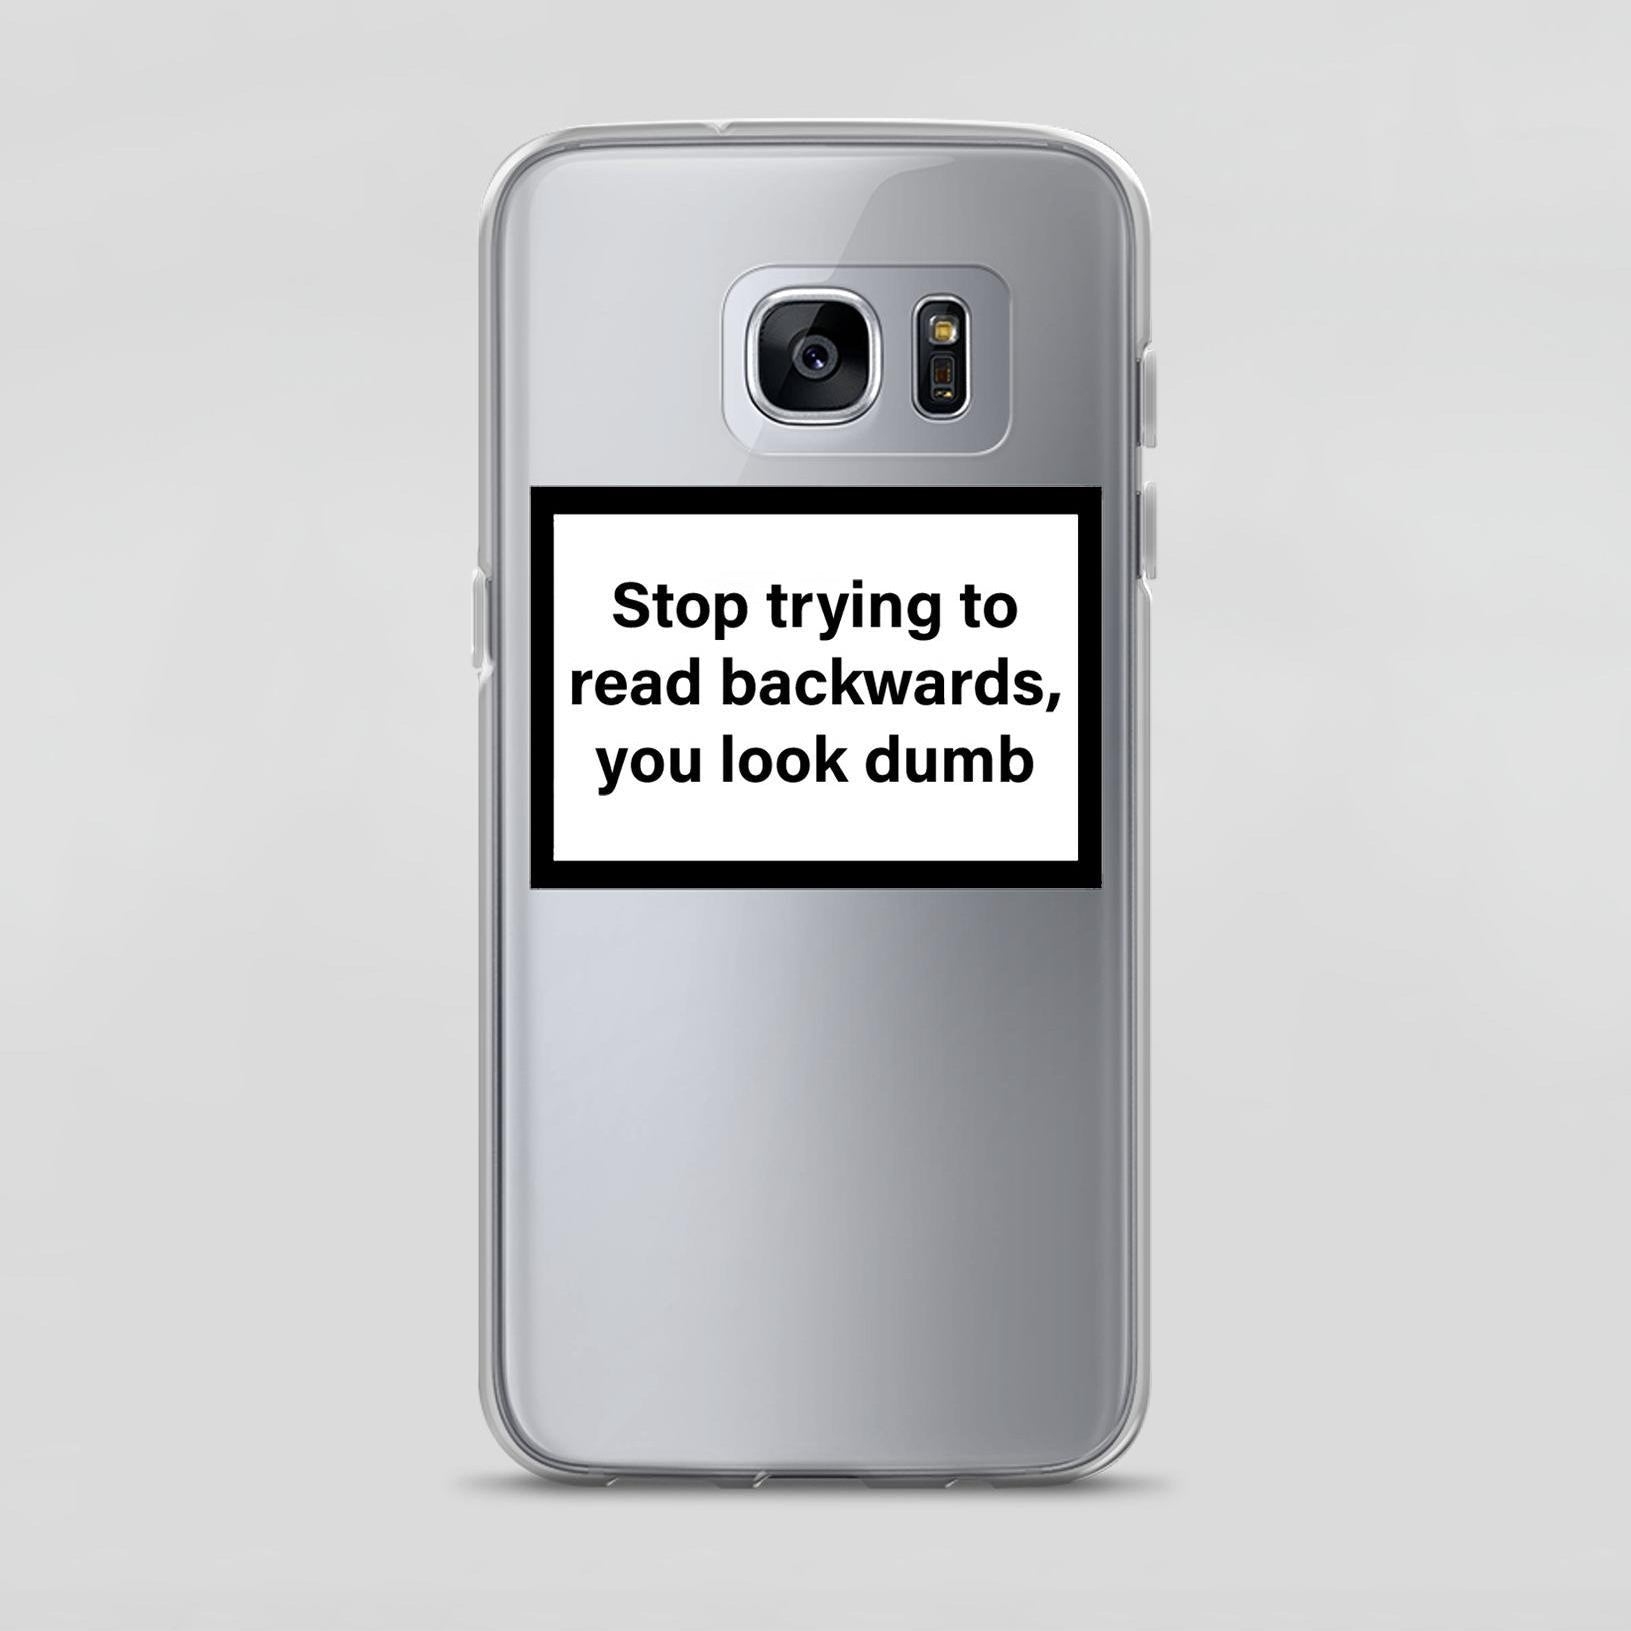 Coque Samsung Stop trying to read backwards you look dumb - - Street Wear / Style Streetwear / Hip-Hop / Japonais / Vintage / Rétro Samsung Galaxy S10 - FuturXwear